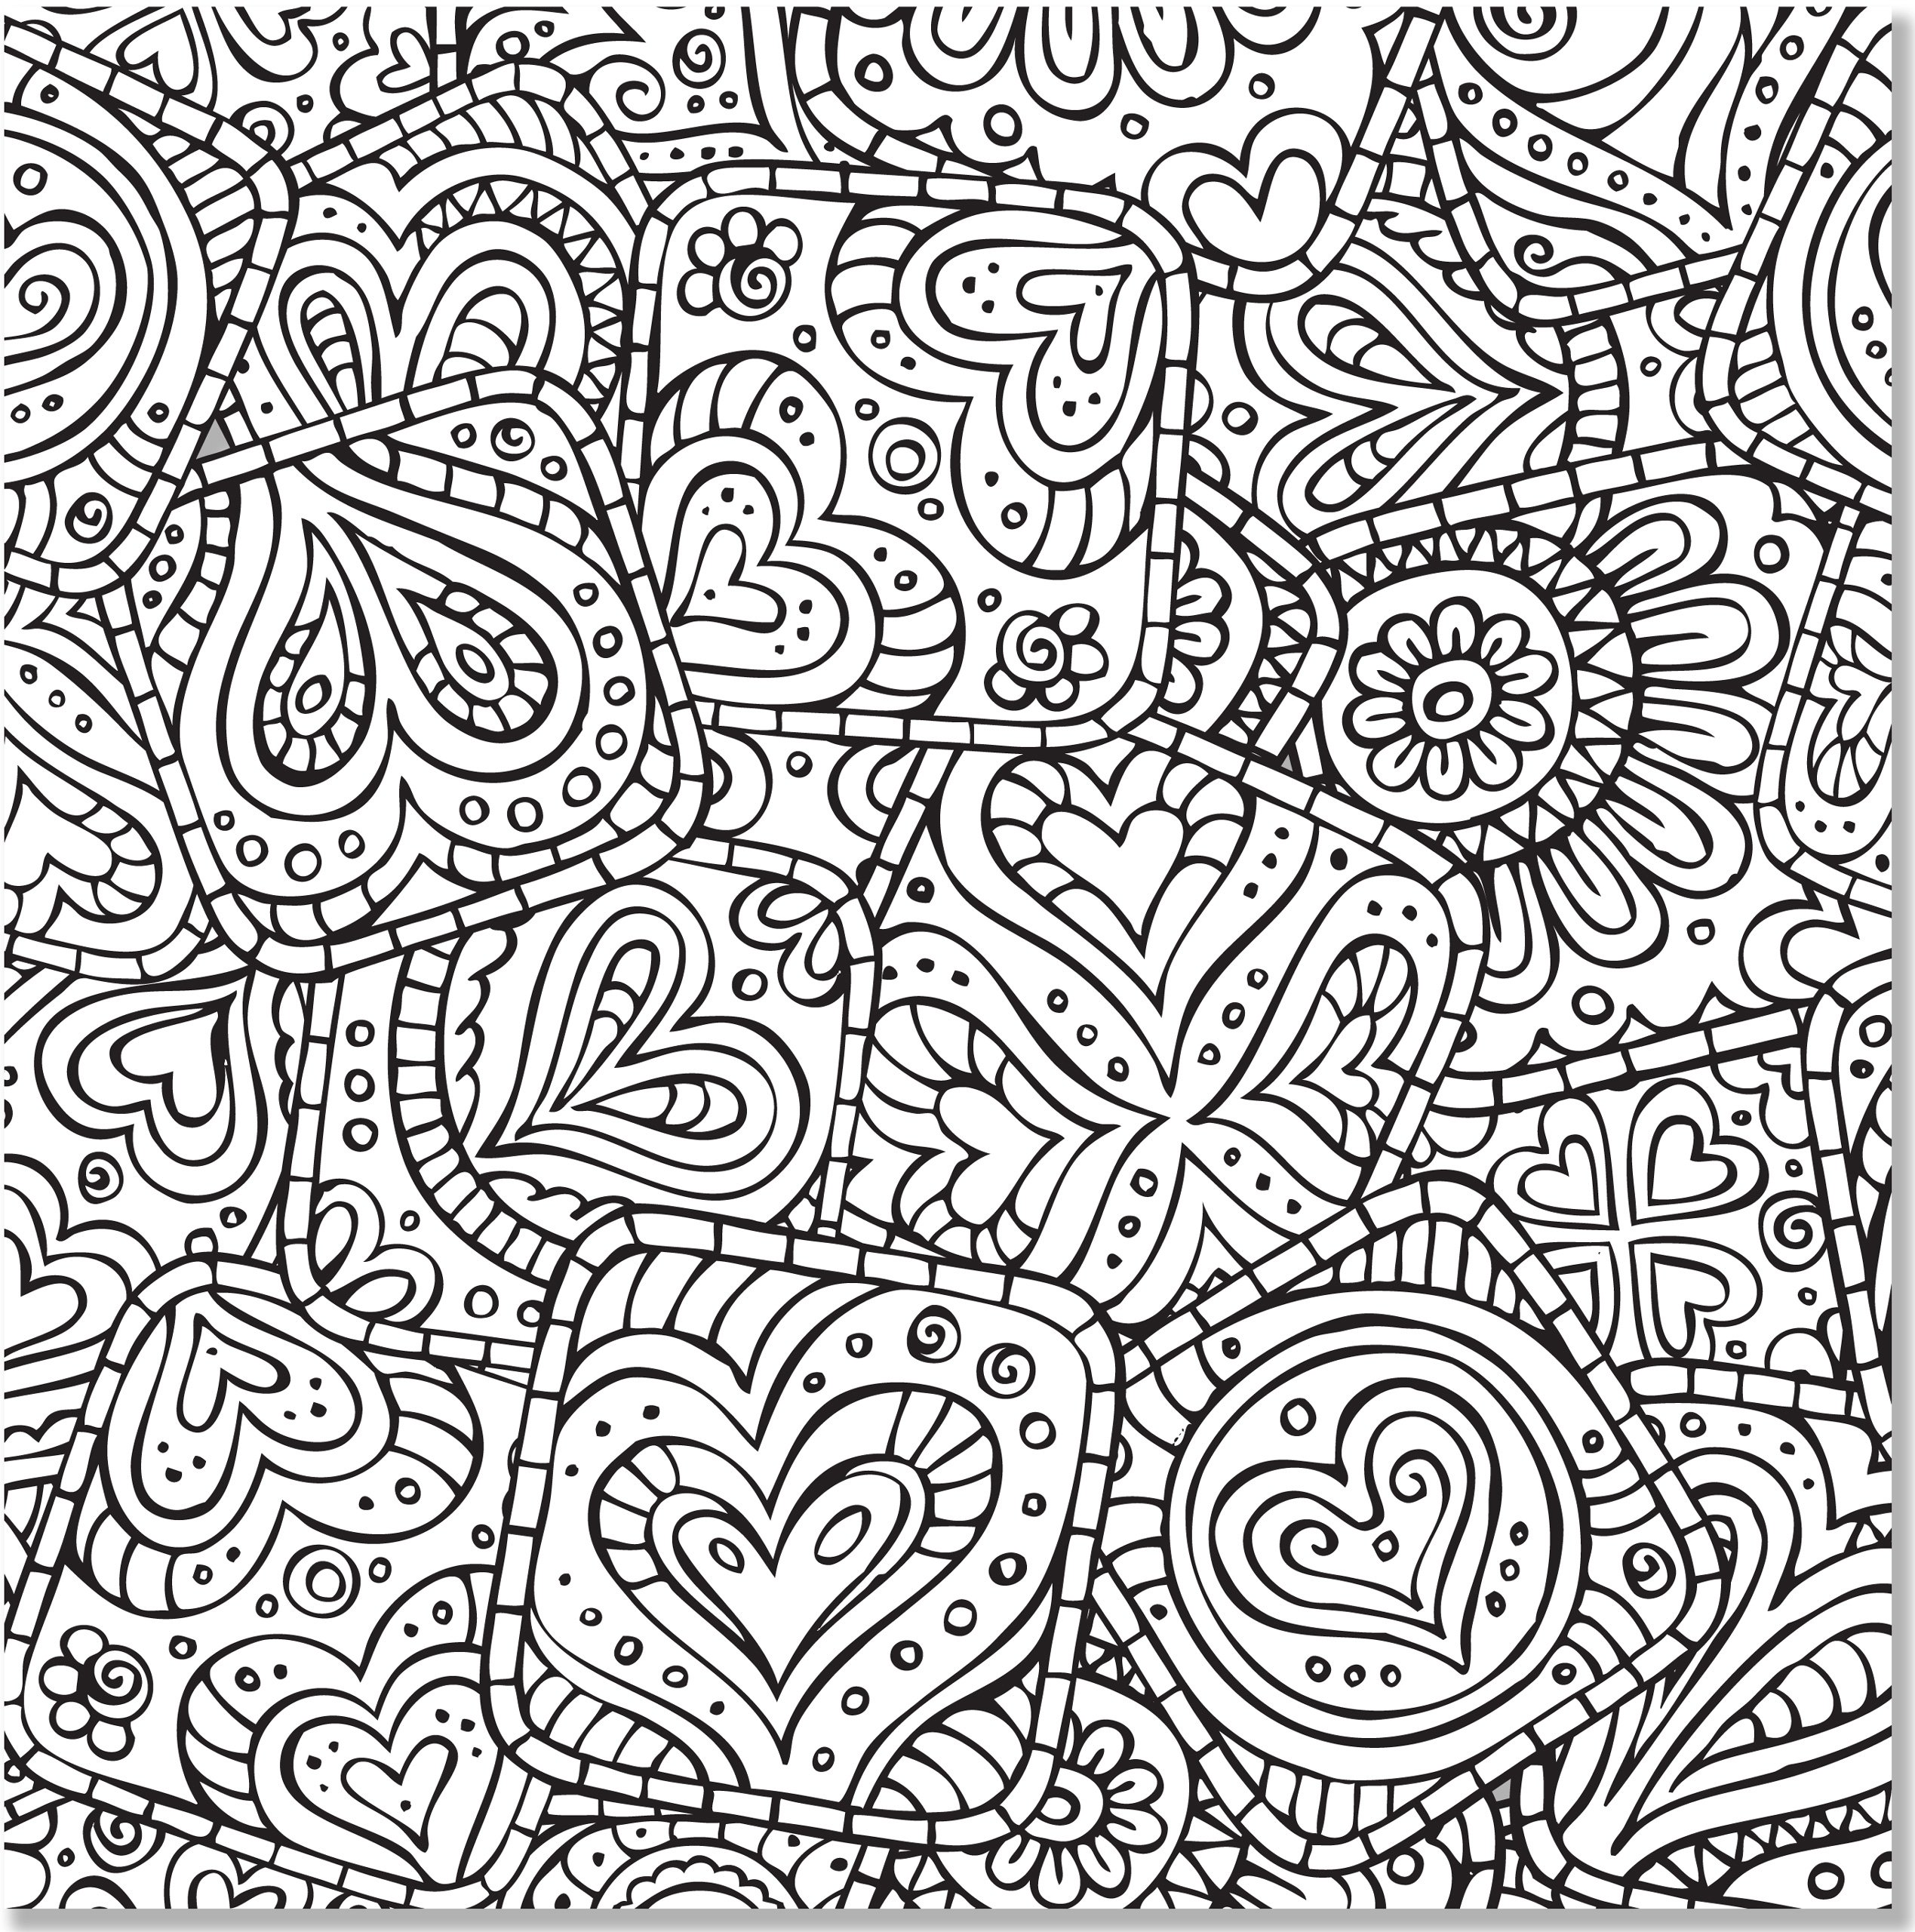 - Amazon.com: Doodle Designs Adult Coloring Book (31 Stress